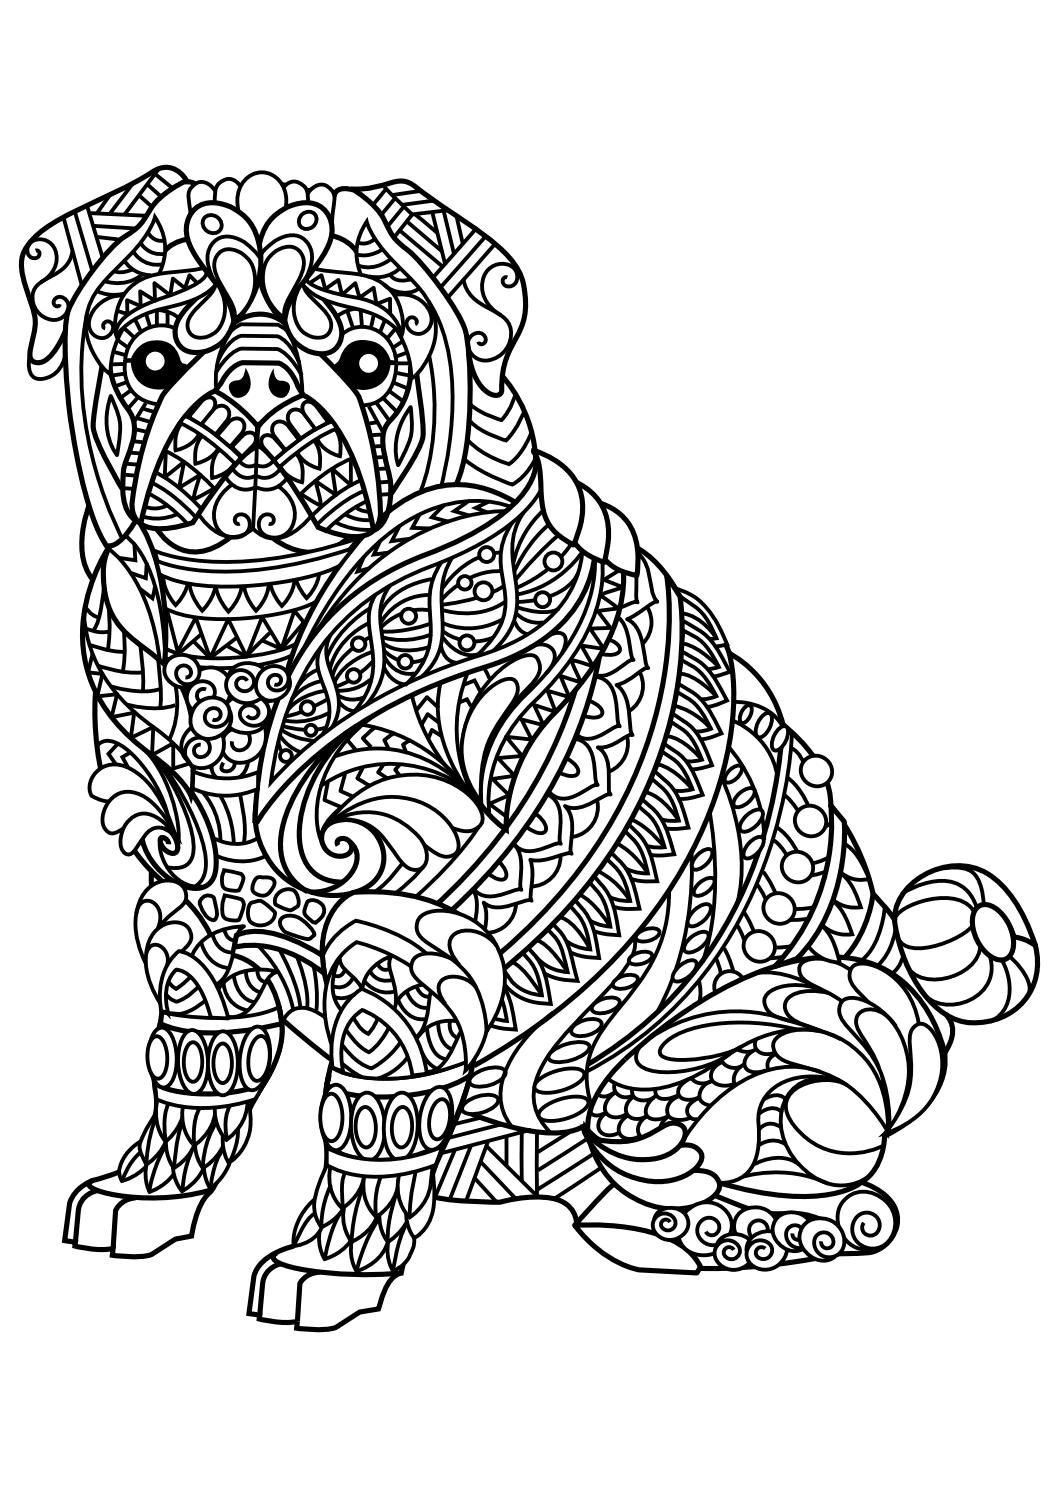 Wolf Coloring Pages For Adults Best Of Animal Coloring Pages Pdf Zum Aus Malen Horse Coloring Pages Dog Coloring Book Dog Coloring Page